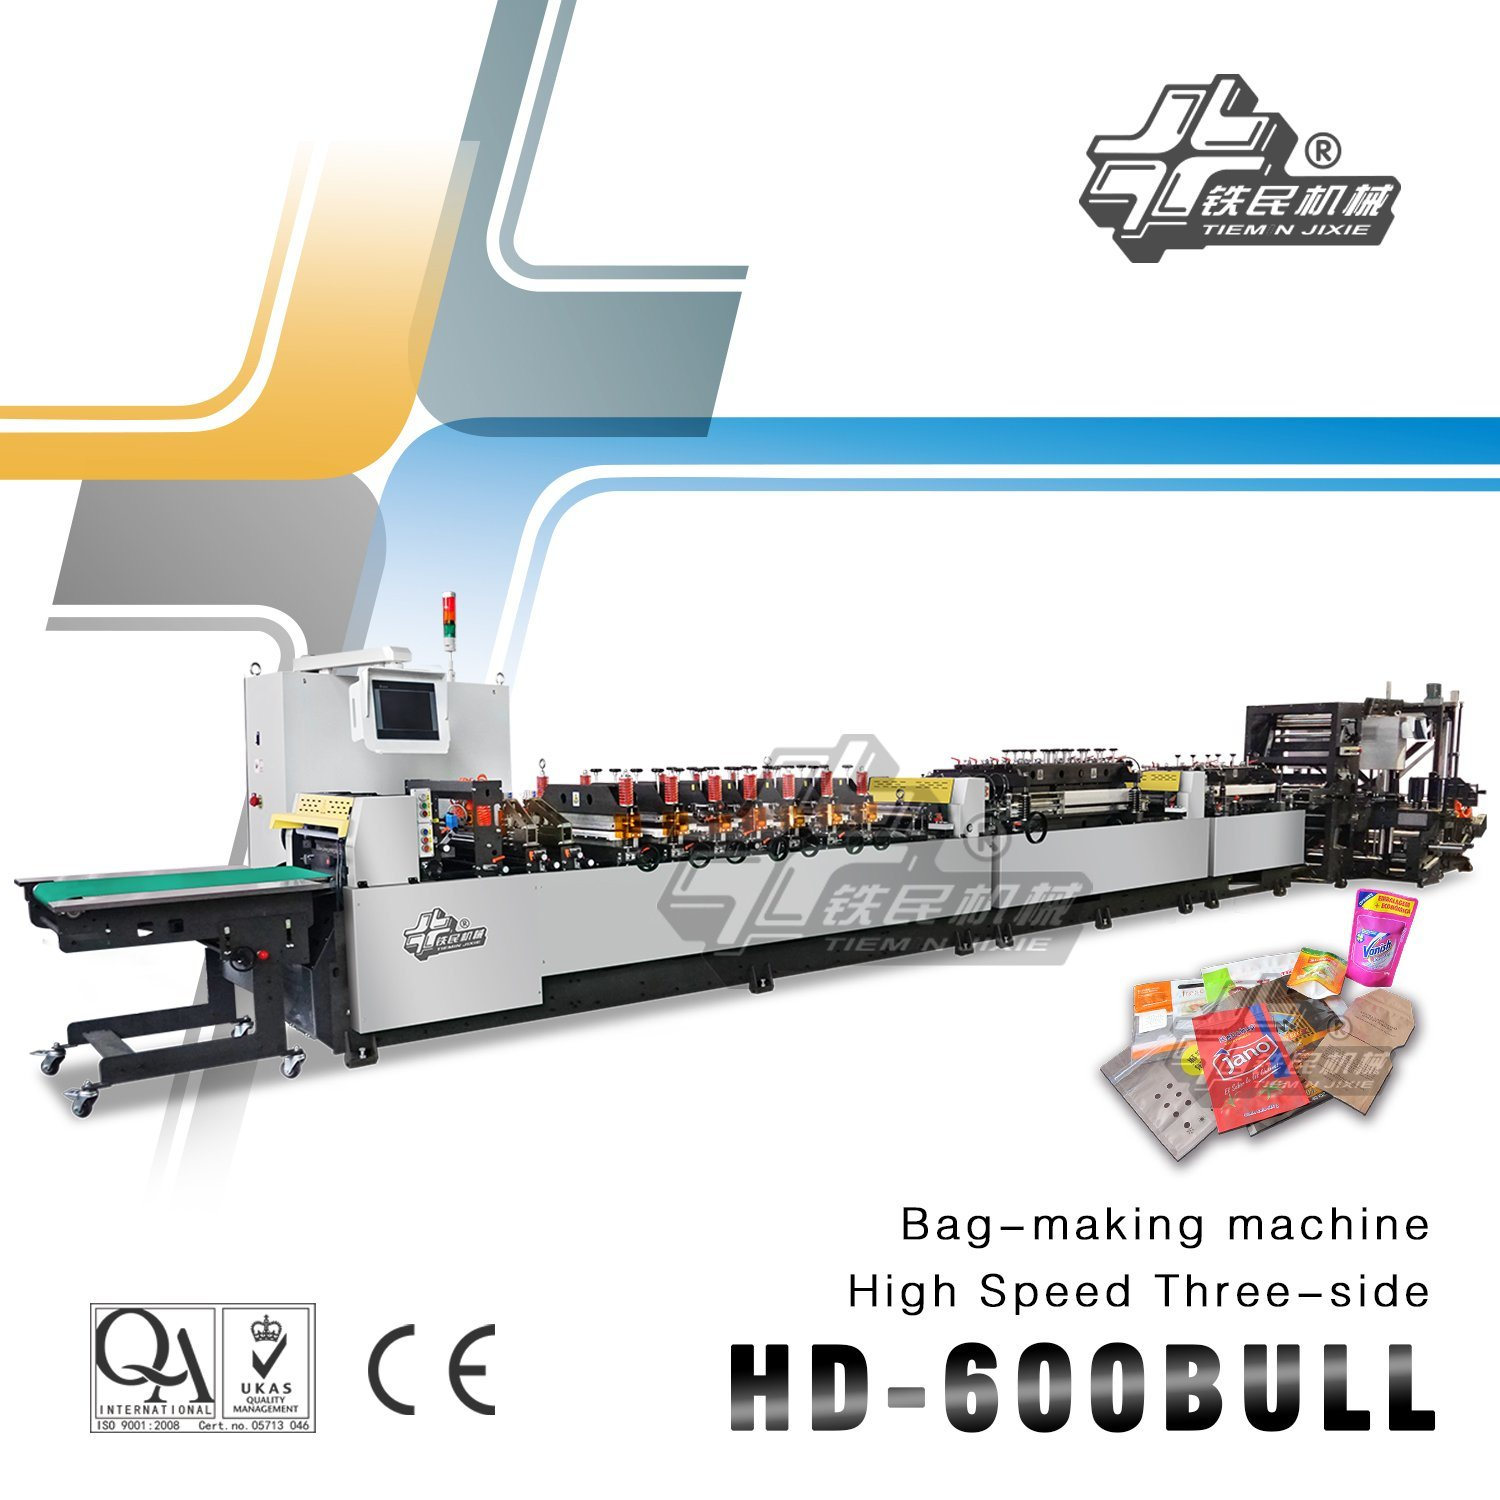 High Speed Three-Side Bag-Making Machine